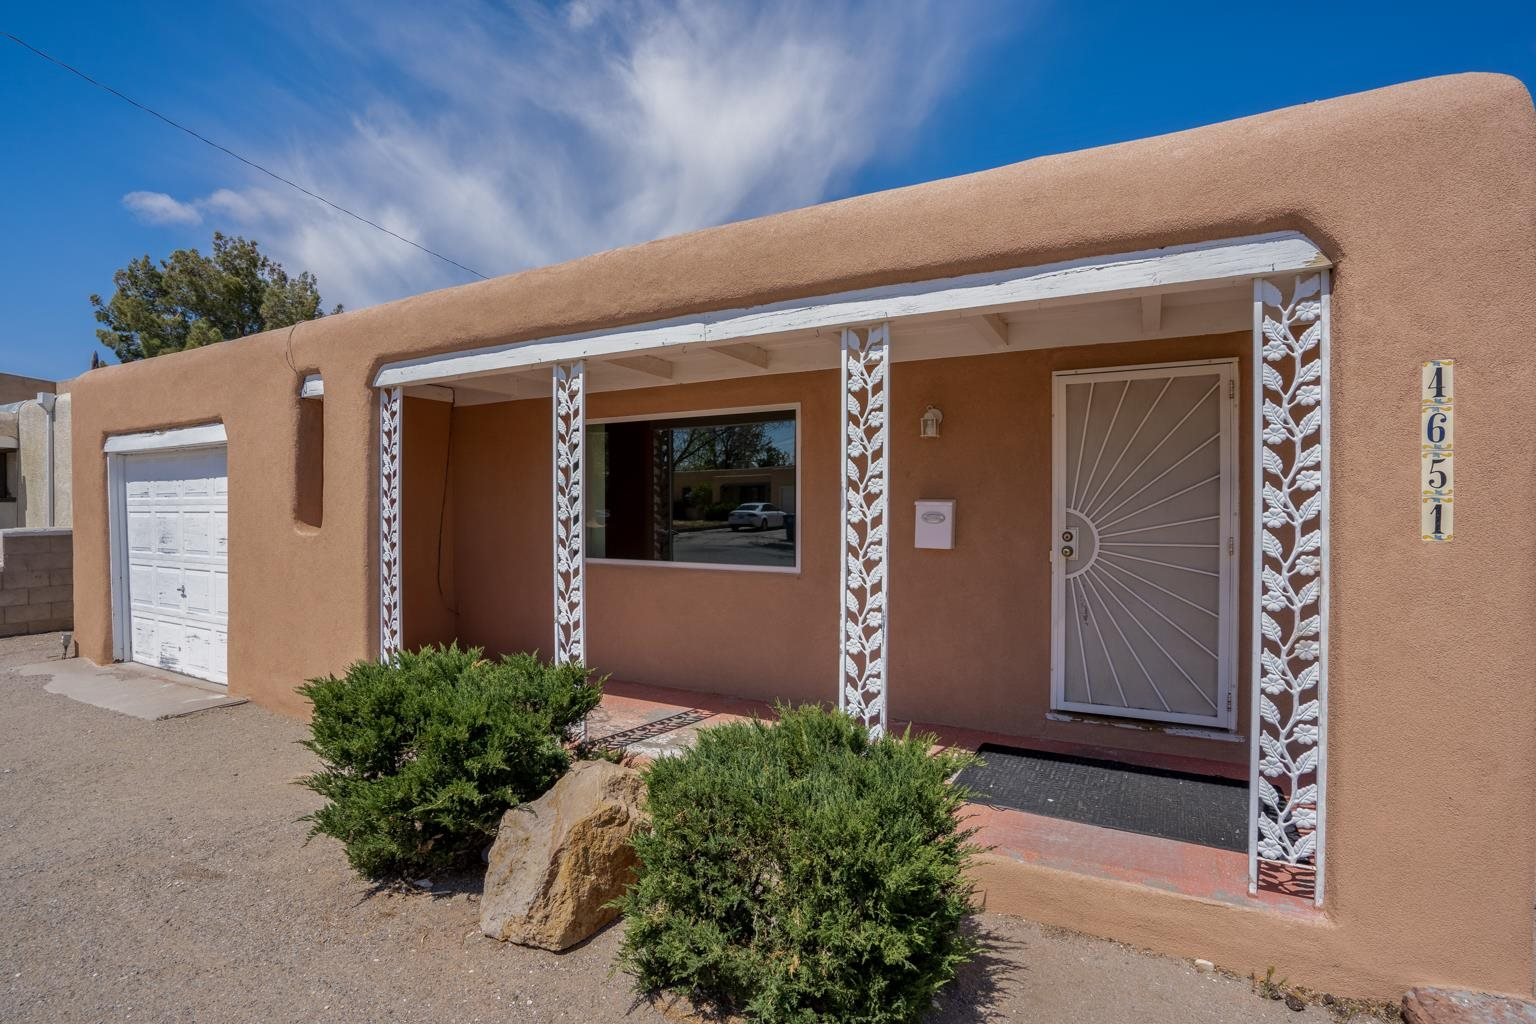 Wonderful property located in the Parkland Hills addition/Ridgecrest neighborhood - quiet with plenty of walking and cycling areas and parks, close to the nob hill shopping and restaurants.. This home offers a new tar roof installed by Alvarado roofing with a 6-year limited roof warranty (transferable). New windows installed by Renewal by Andersen. New stucco by Renewal by Andersen. New shed in backyard installed by tuff shed. The interior is waiting to be updated and now you can give it your very own personal touch. Endless Possibilities! Bring your Vision and Creativity!